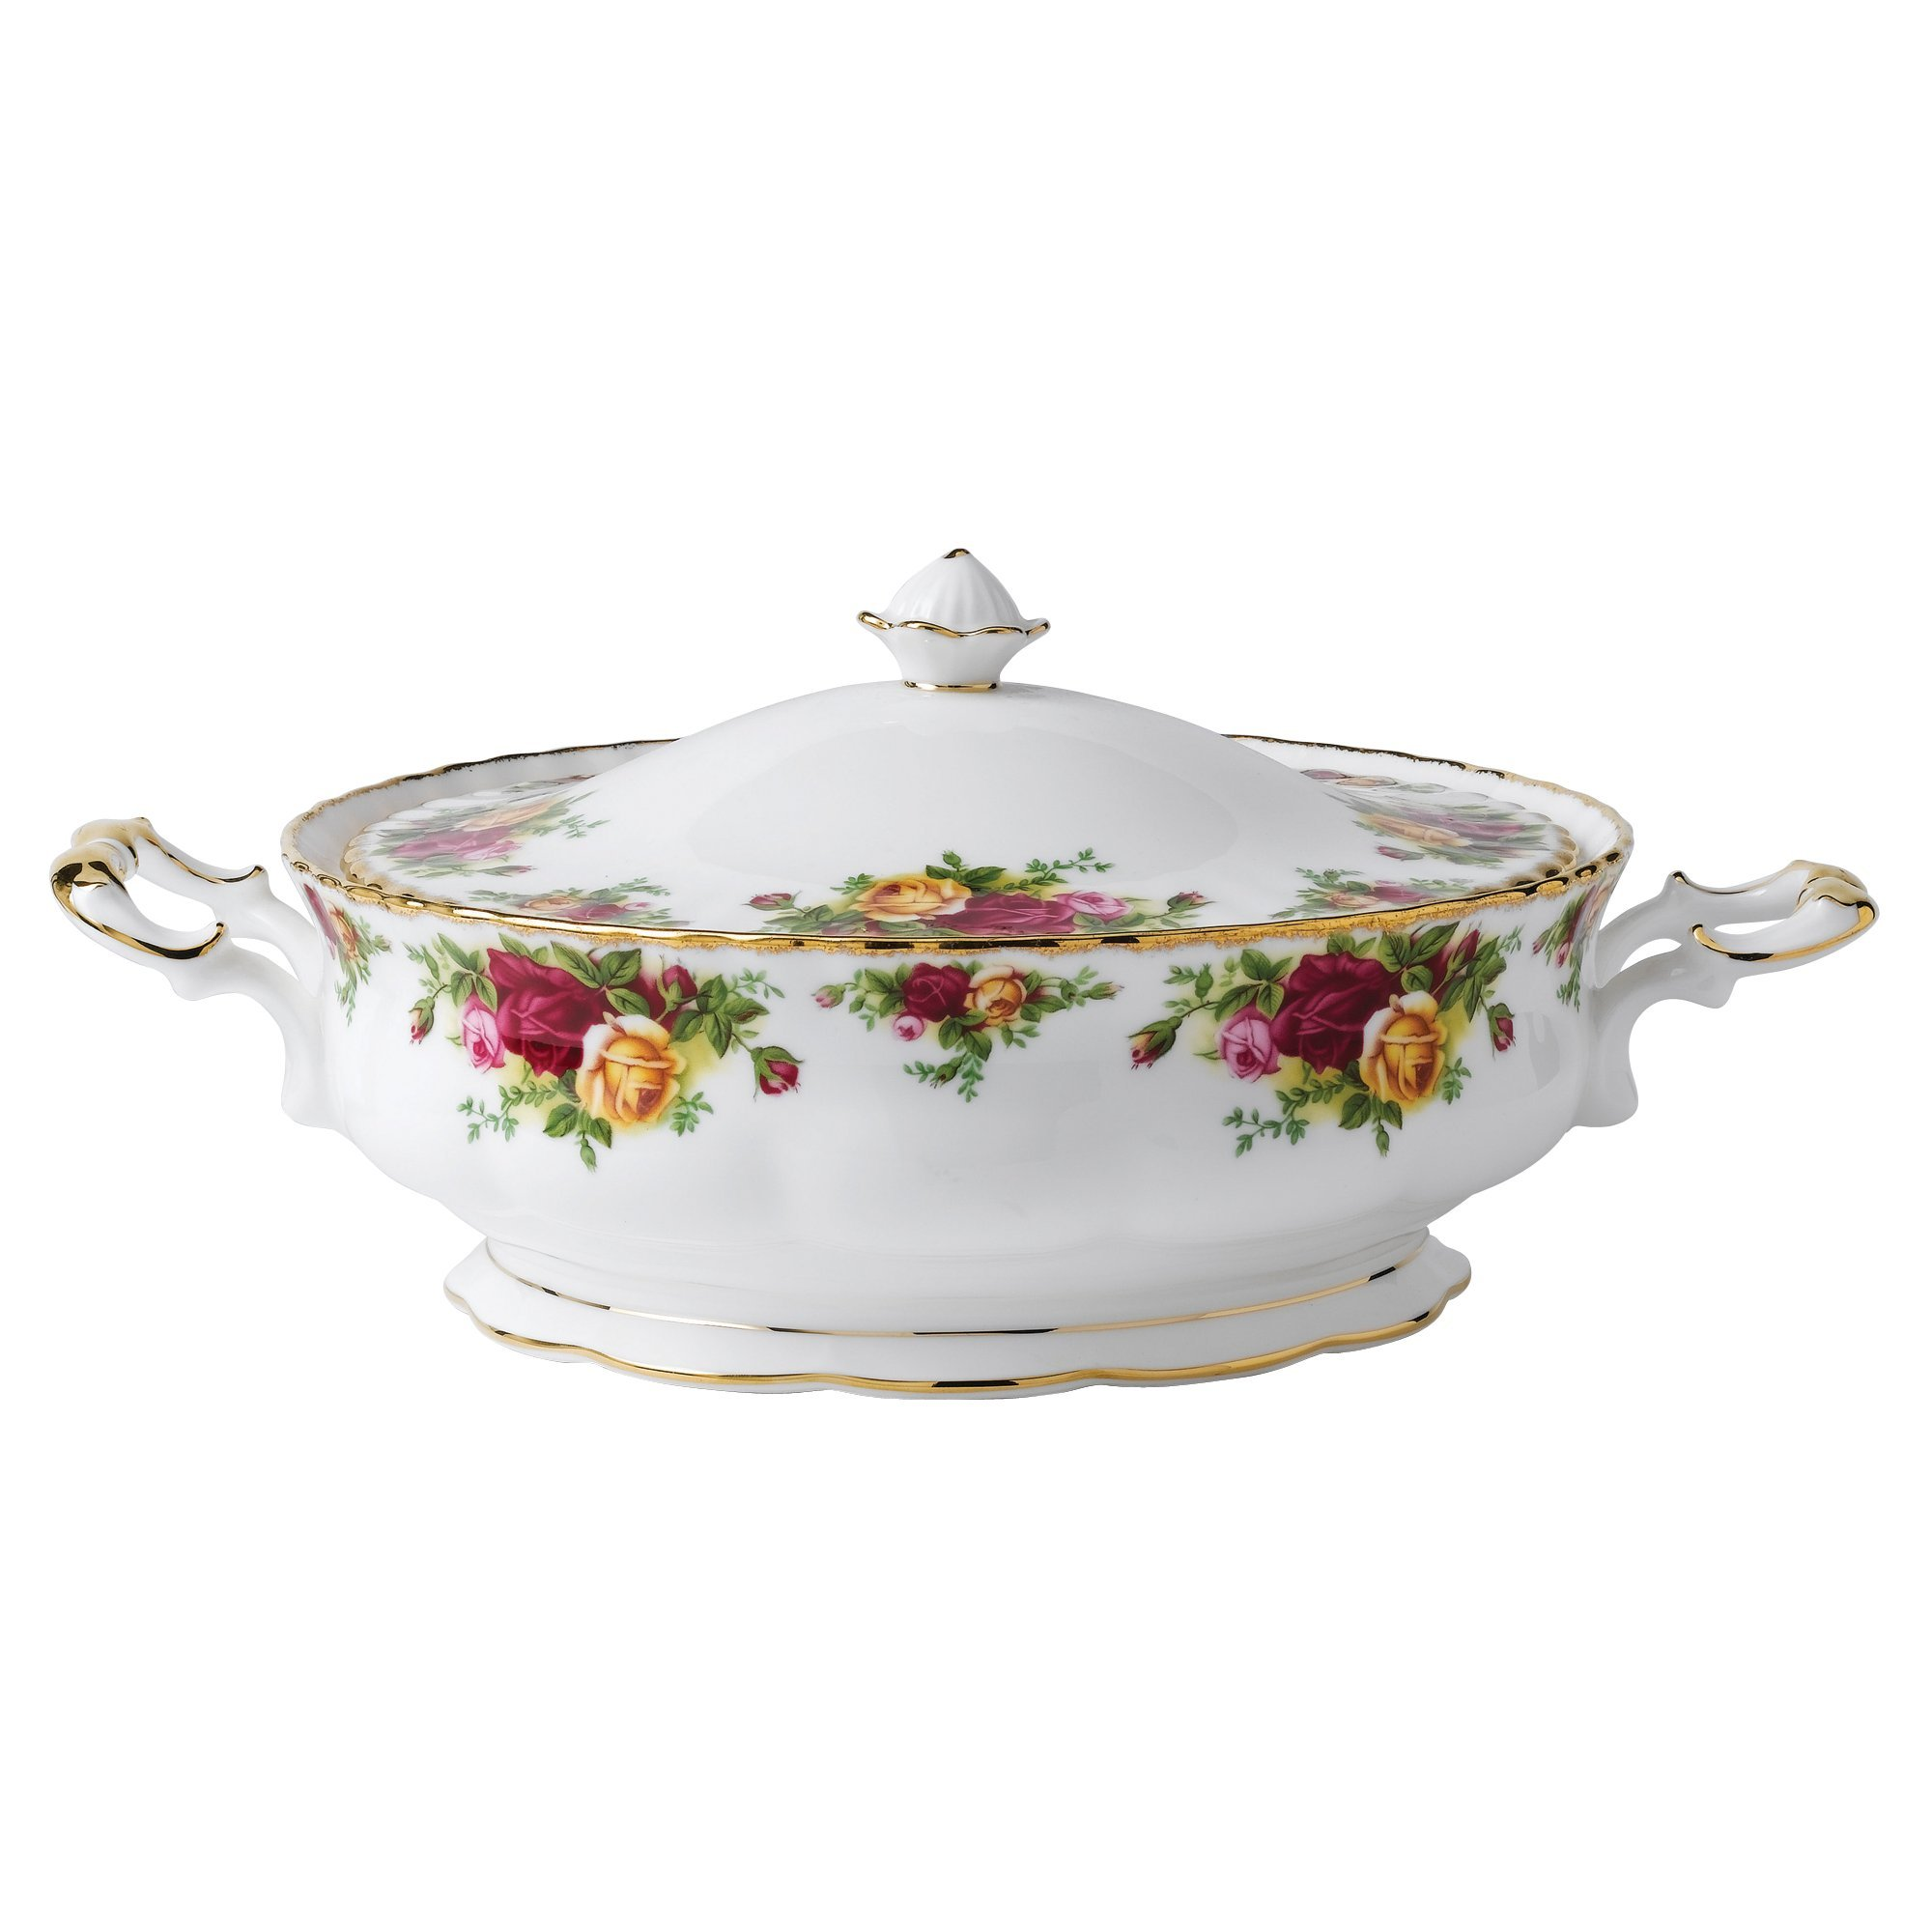 Royal Albert Old Country Roses 50-ounce Covered Vegetable Dish by Royal Albert (Image #1)